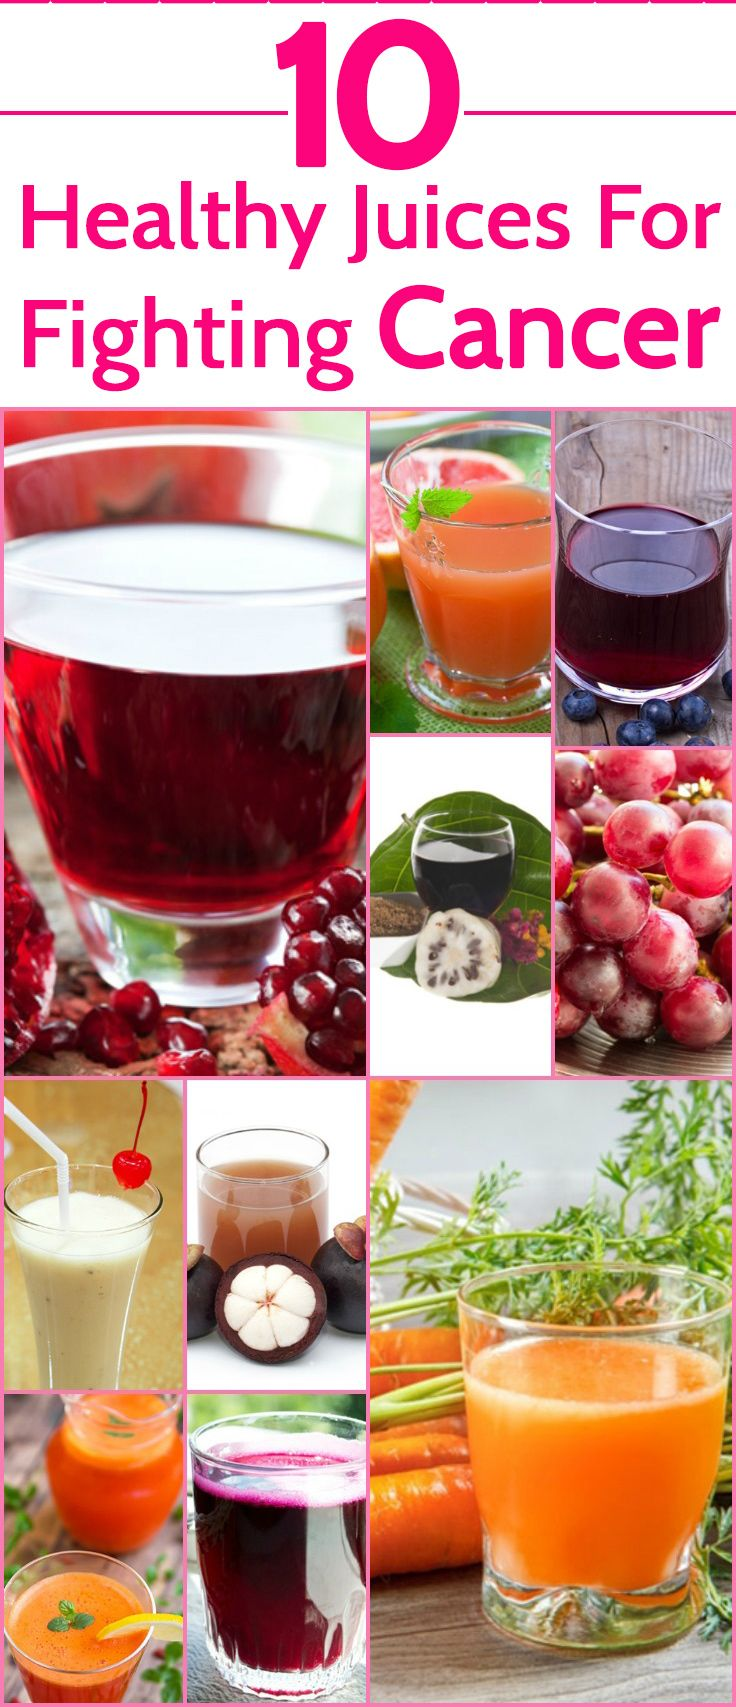 10 Healthy Juices For Fighting Cancer - Including healthy fruit juices is another important part of cancer treatment. This article gives the effective cancer fighting fruit juices that help in a ... #healthyrecipes | #healthyfood | #healthydiet | #healthyjuices |